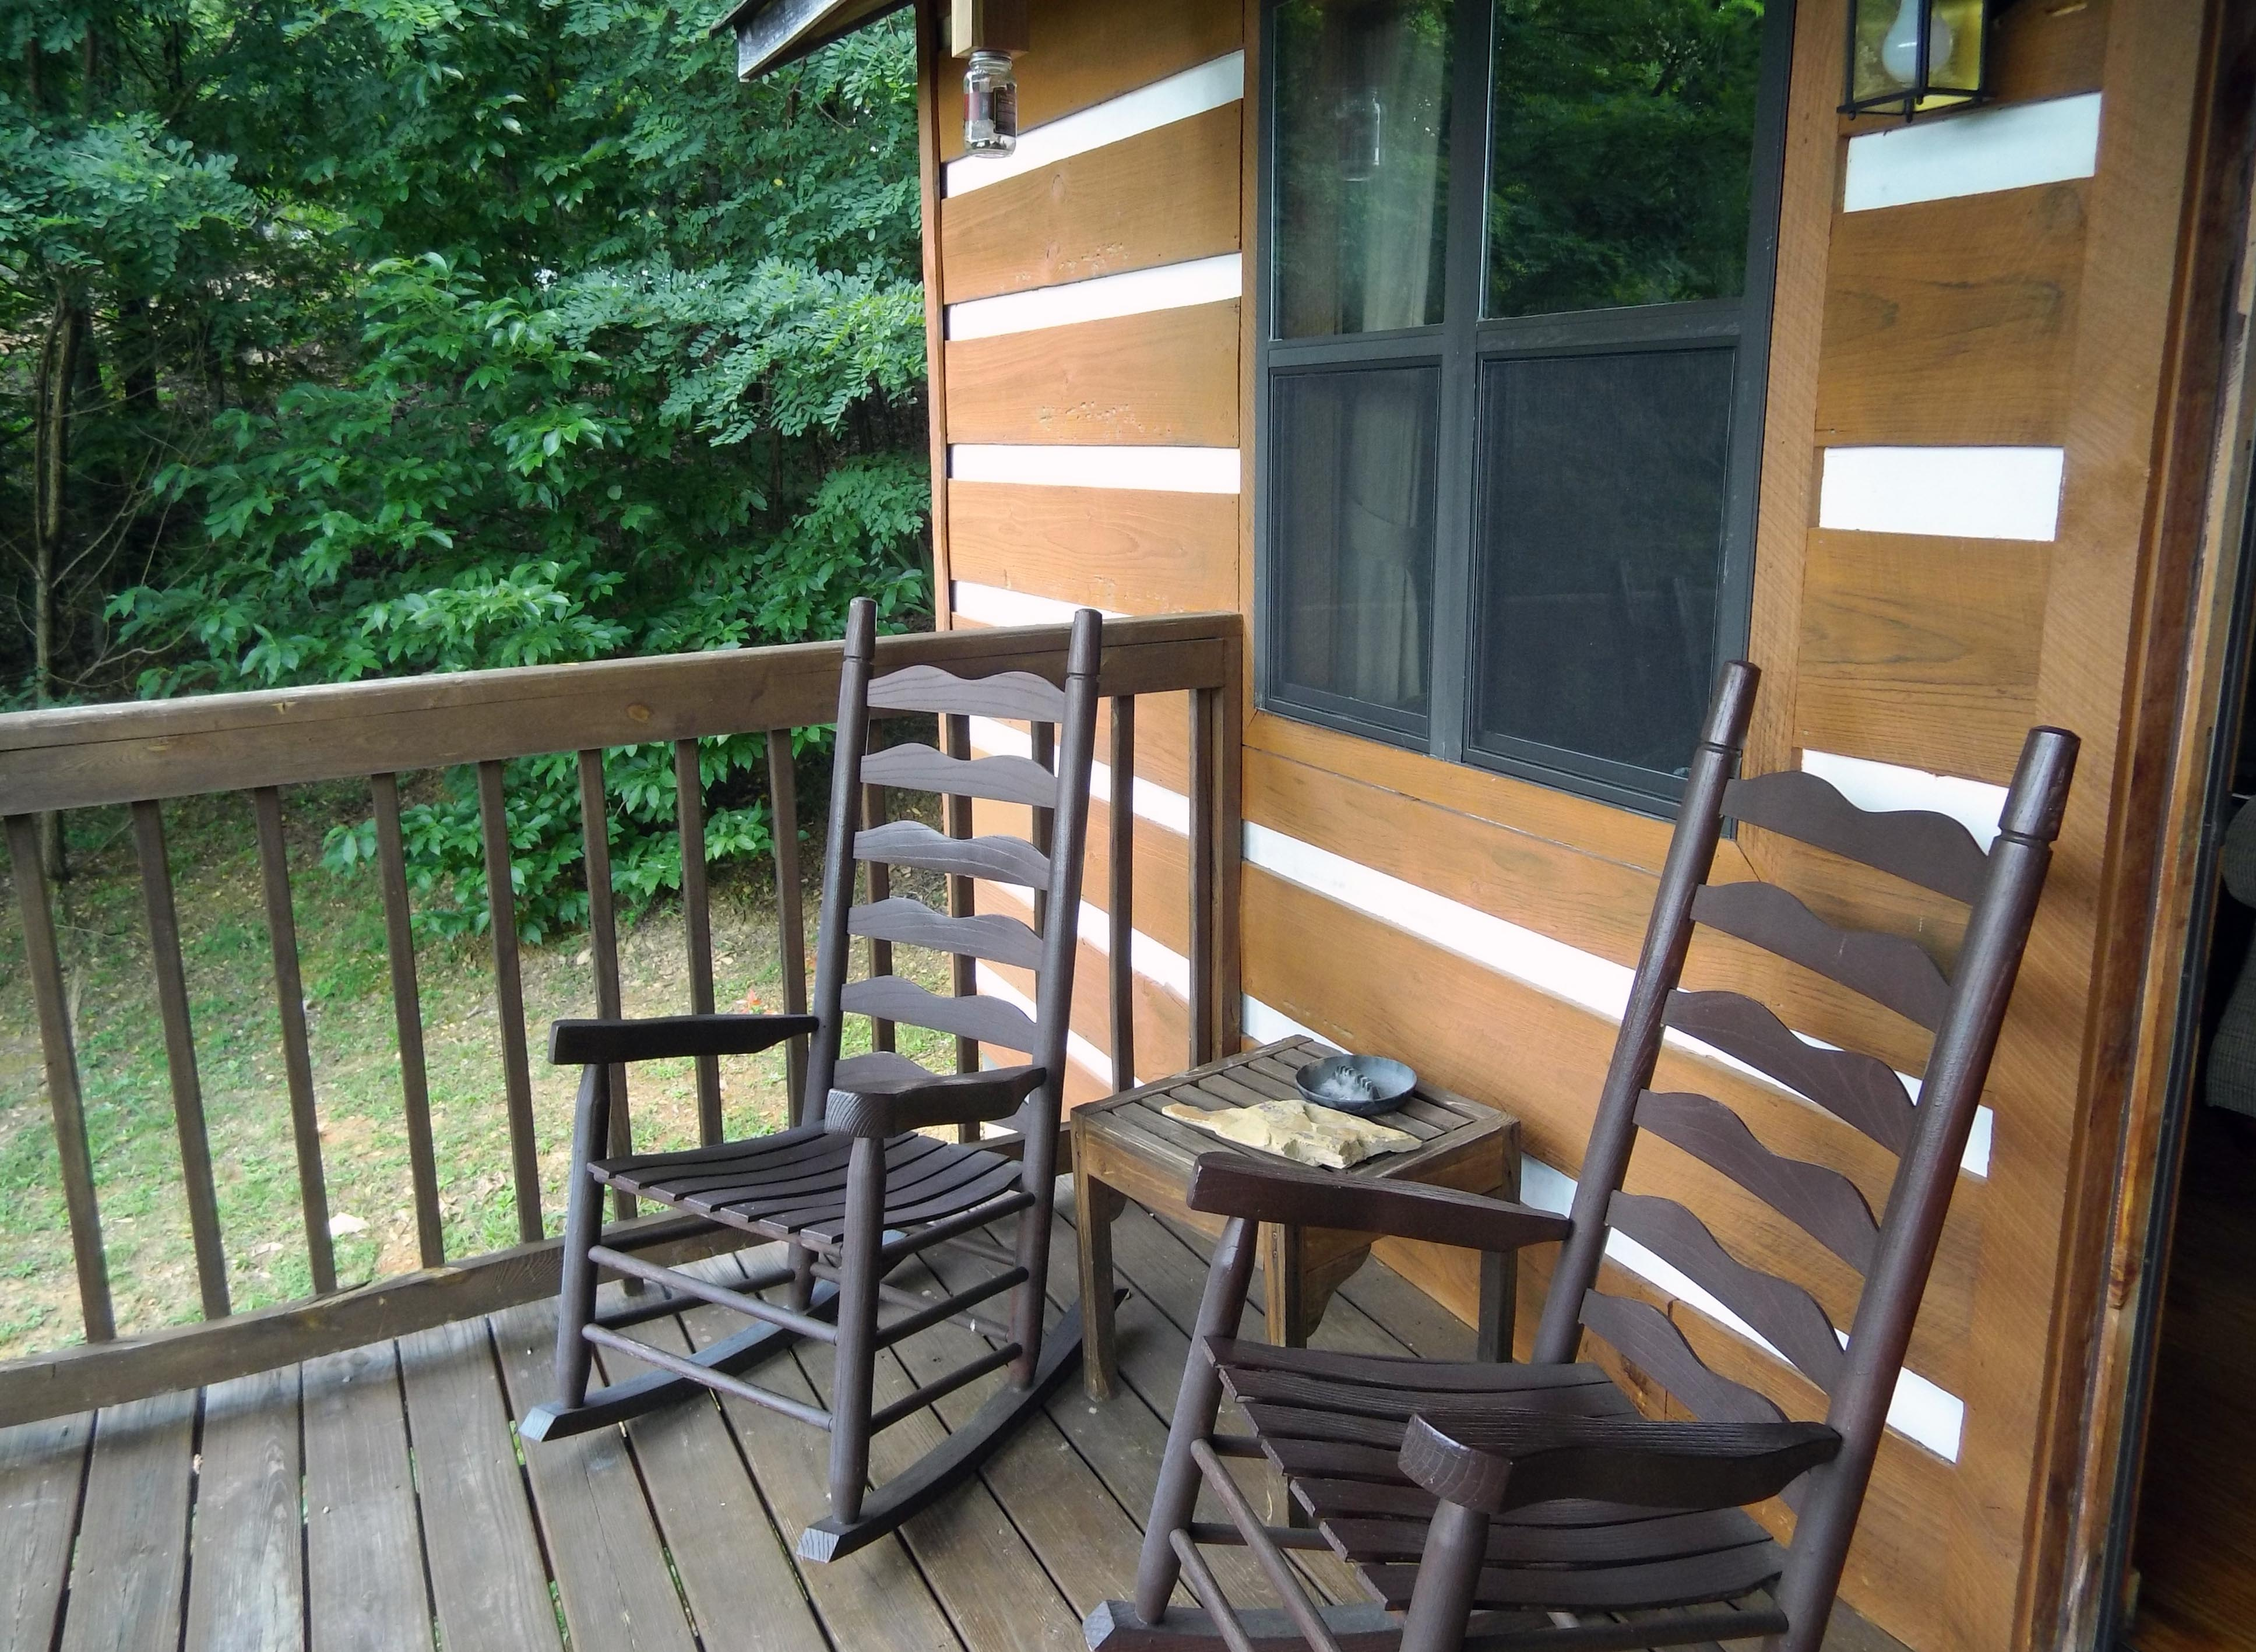 rentals w bedroom this f e rent cabins deck size tn homes house out plans plus for property in apartments b bedrooms cabin cinem gatlinburg sale at hot full three story log ski tub mountain image storey a smoky